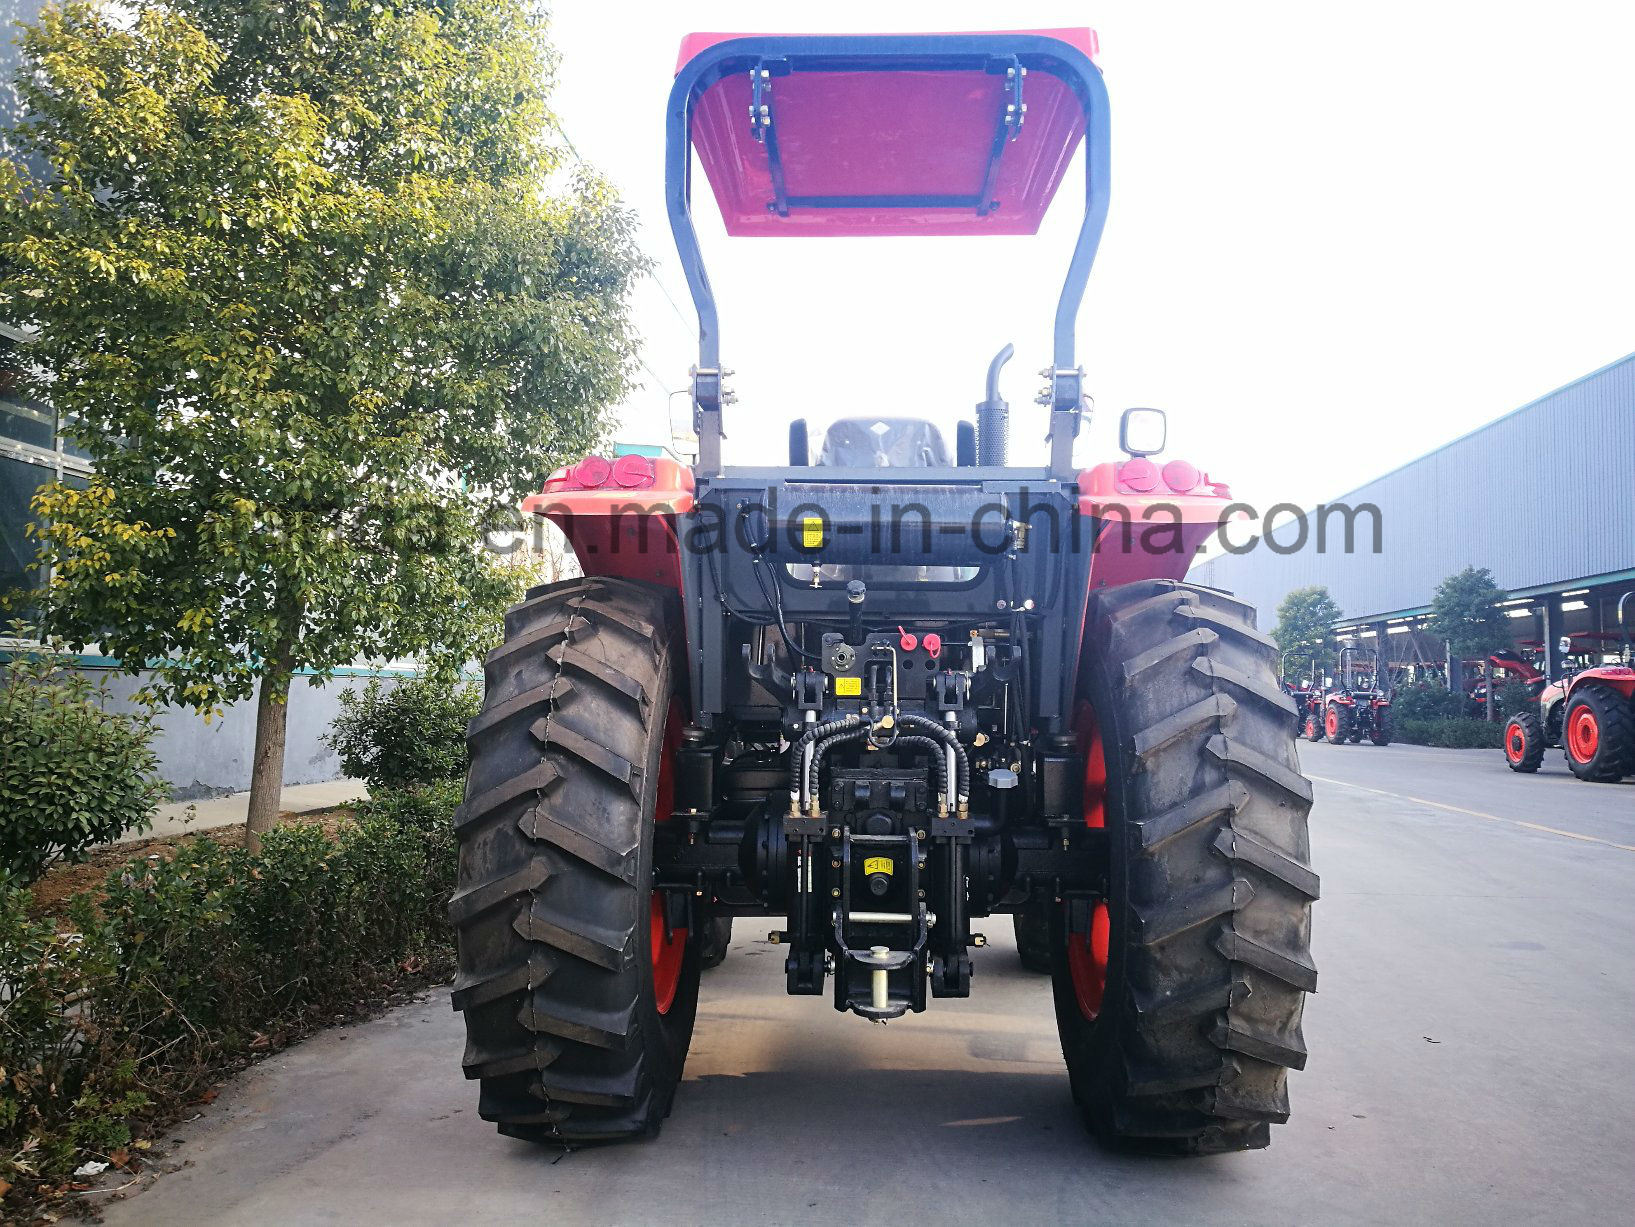 New Wheel 90HP Tractor with Diesel Engine of Kubota Type (OX904)